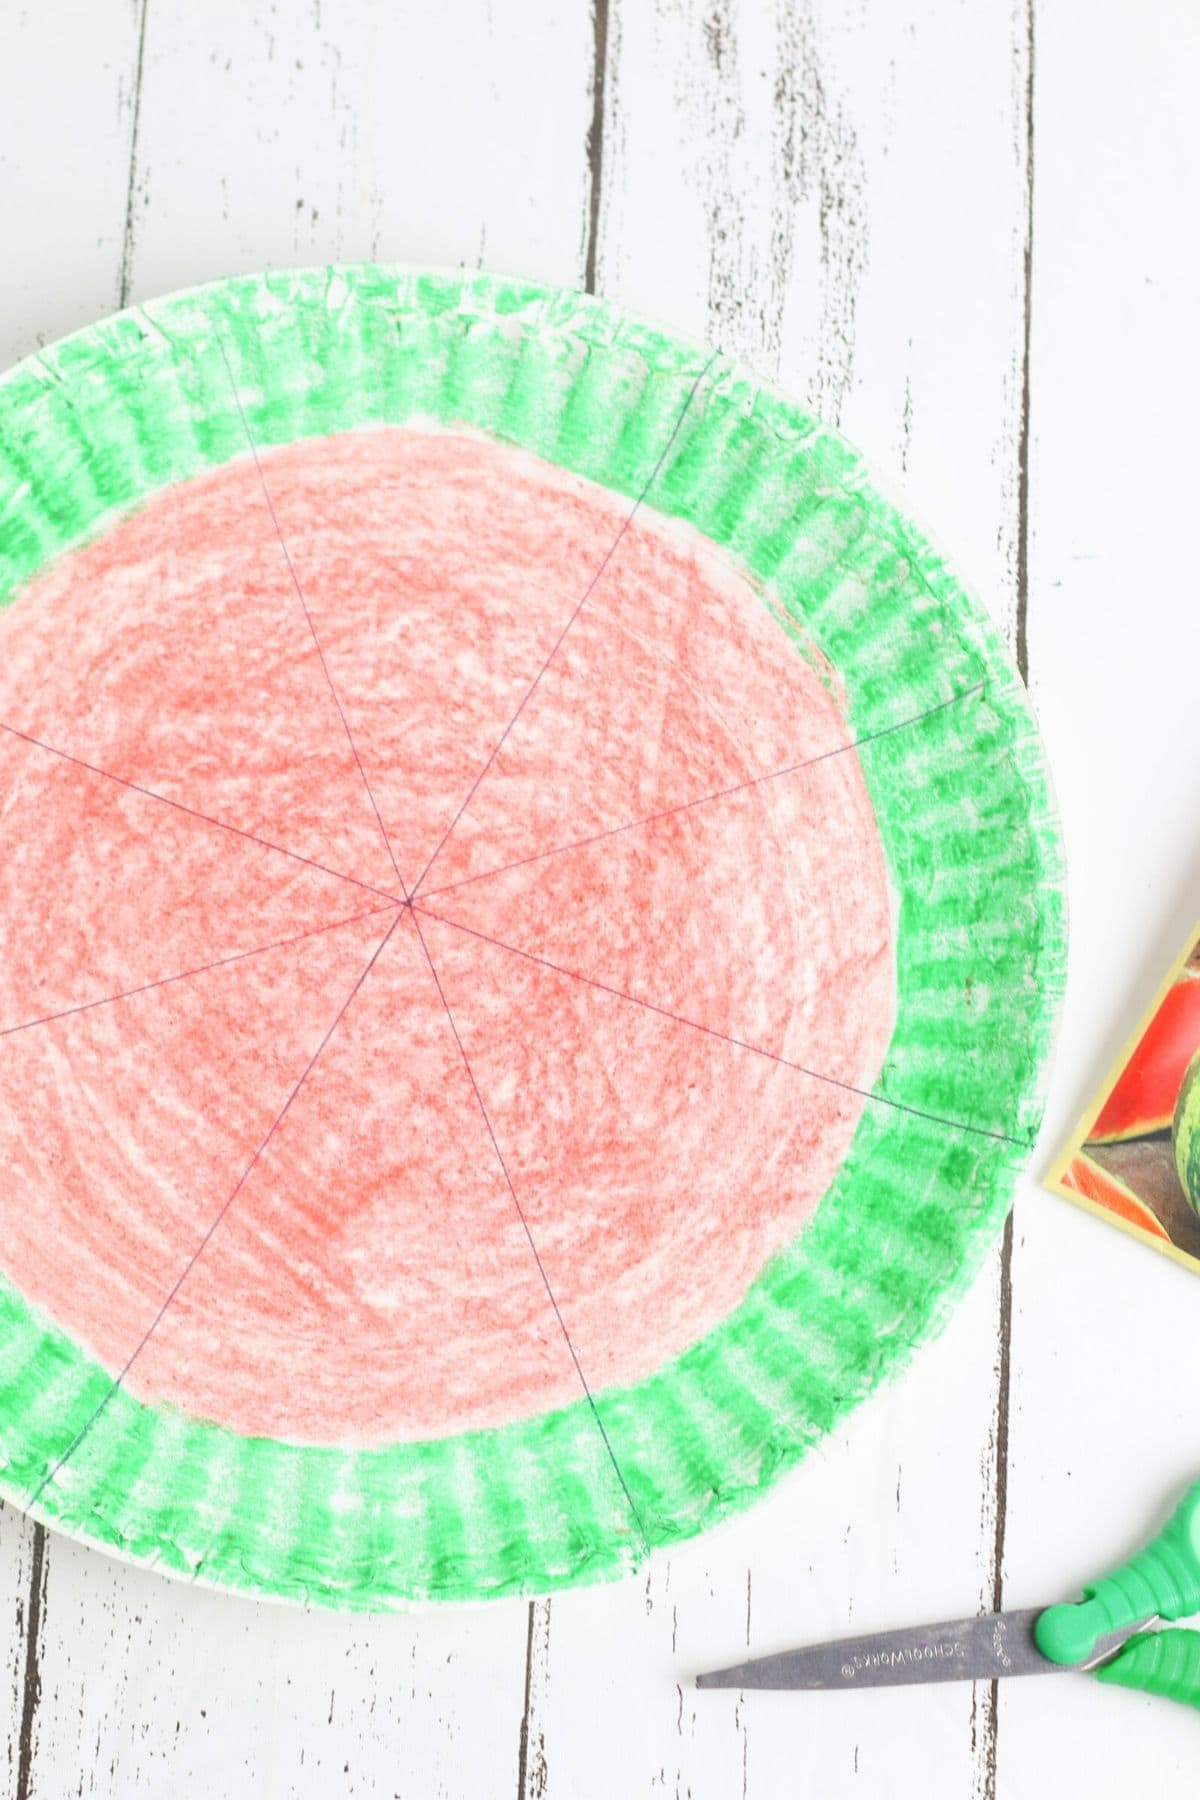 paper plate colored like a watermelon, being cut into slilces